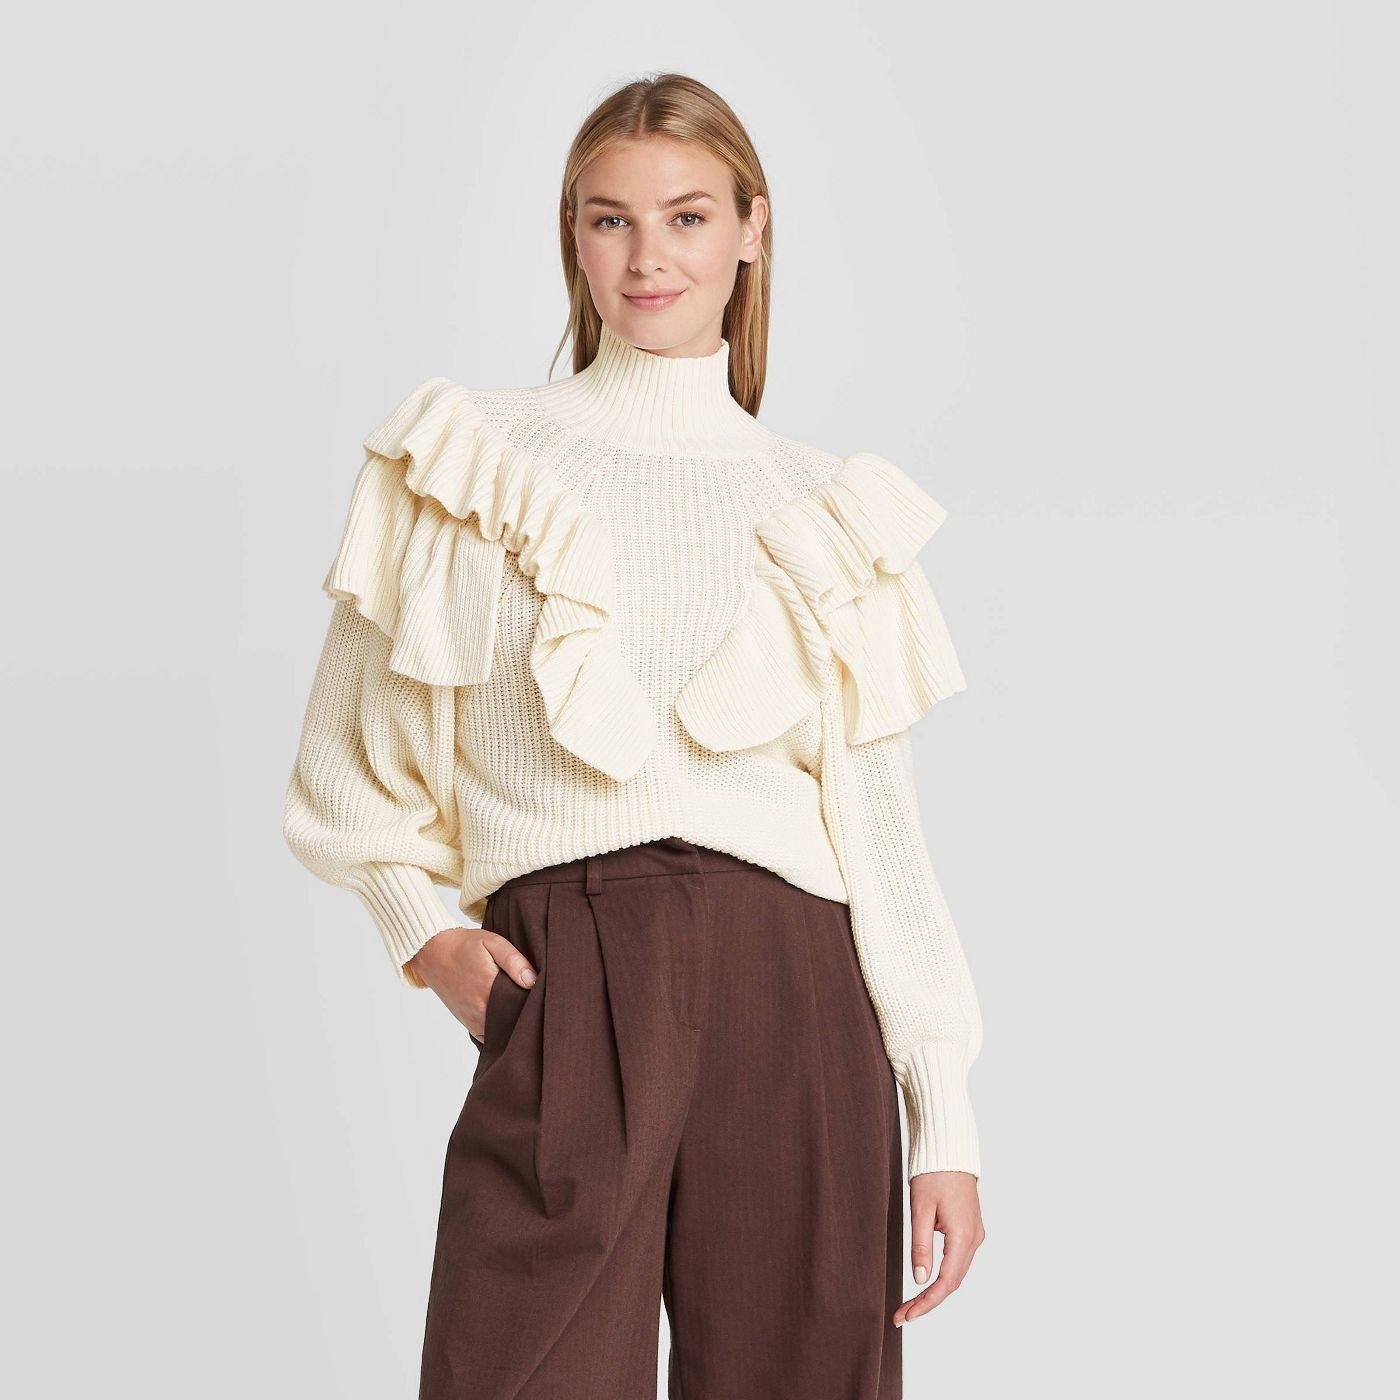 Model in cream ruffle crewneck sweater